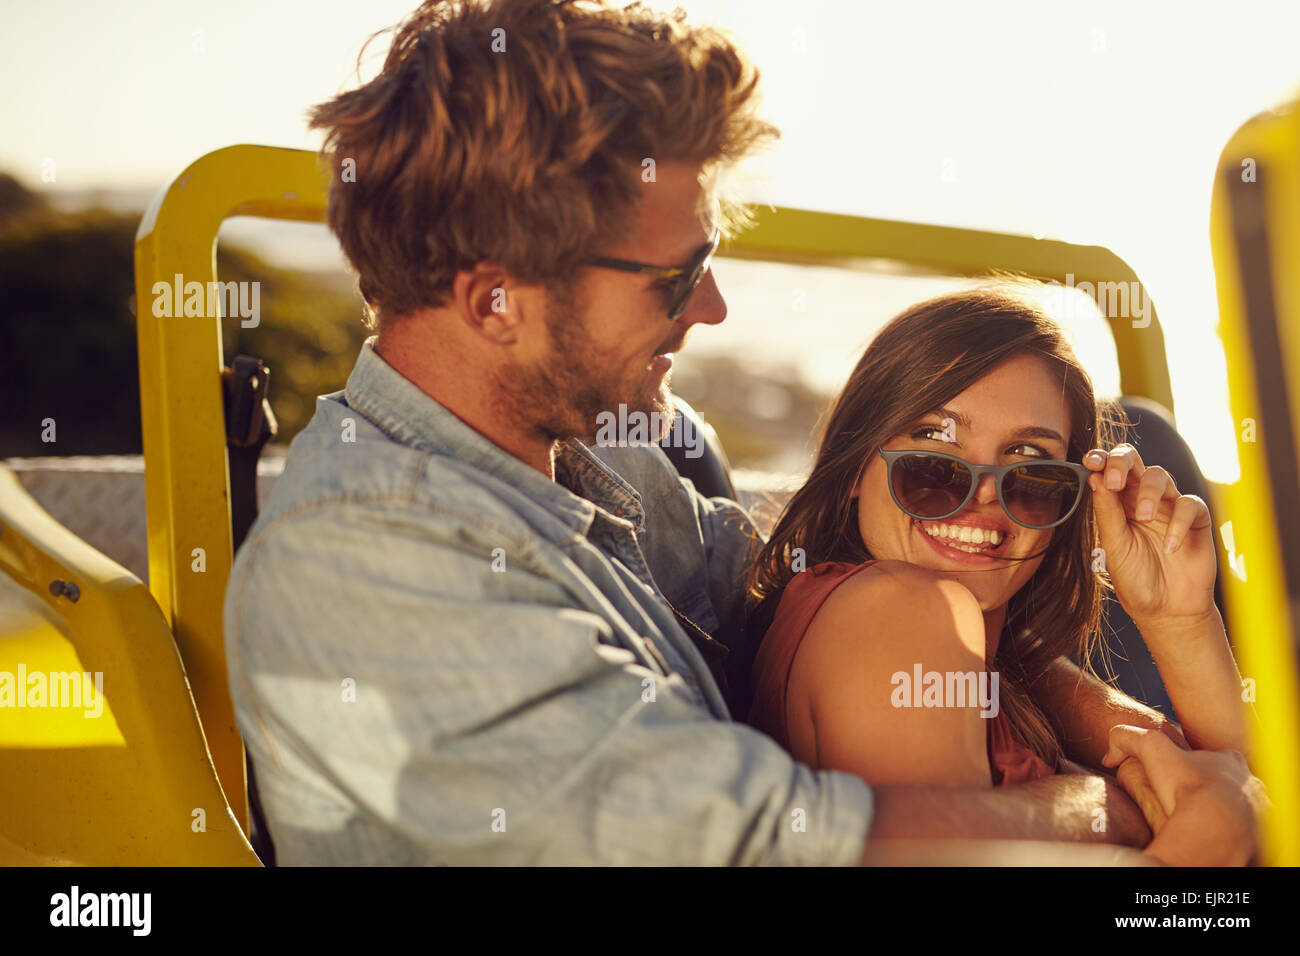 Portrait of romantic young couple having fun on a road trip. Playful young man and woman in a car on holiday. - Stock Image